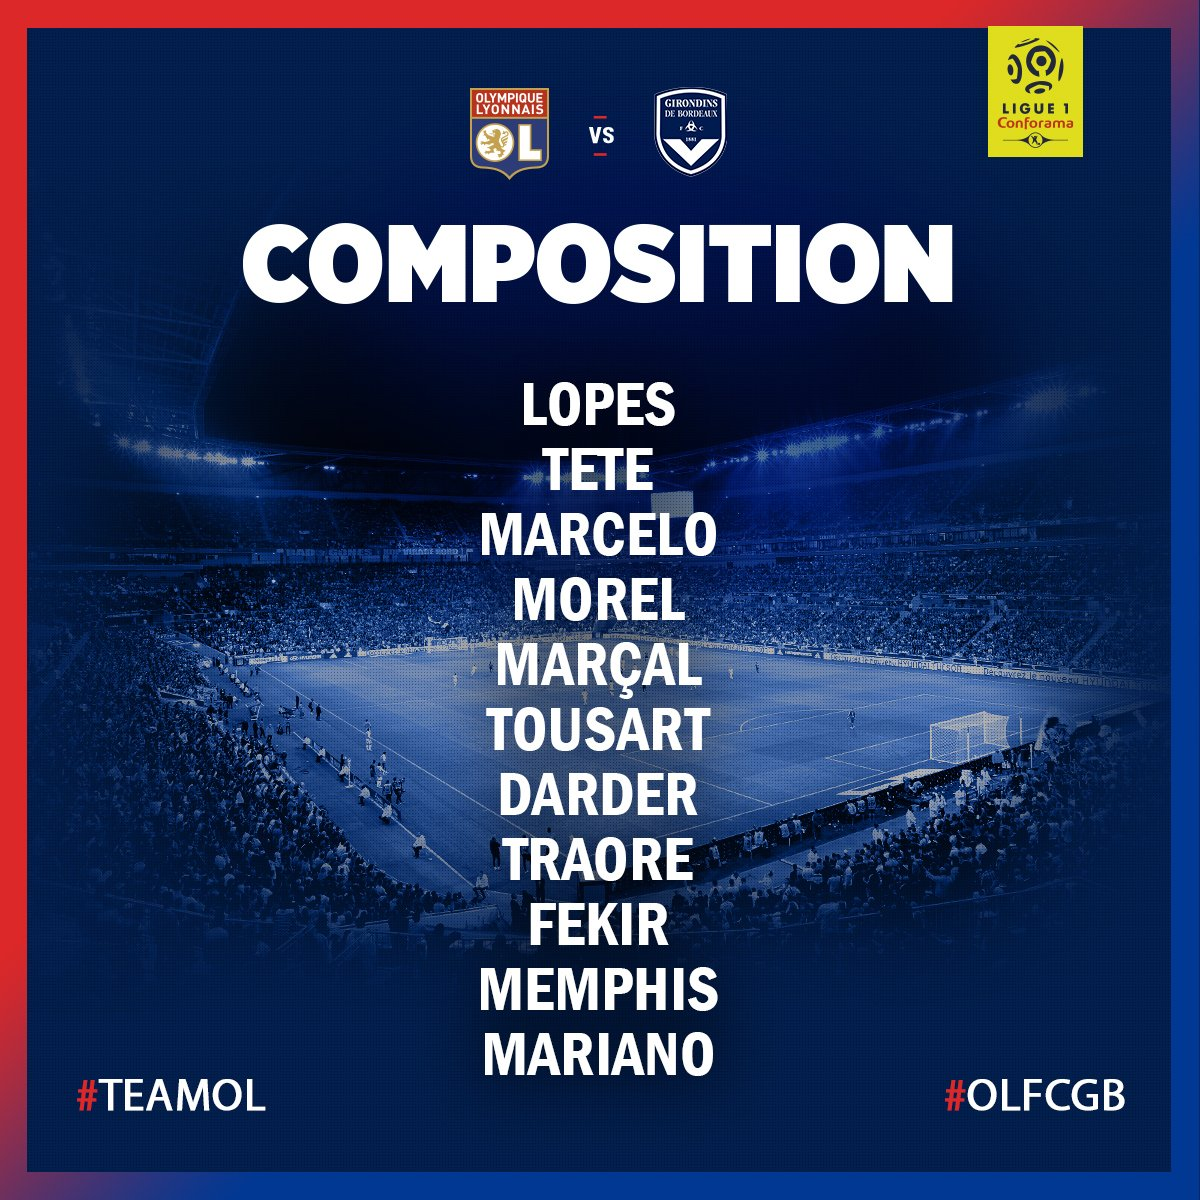 #OLFCGB, la compo !!  #teamOL 🔴🔵 https://t.co/aP7Ib4vQMk